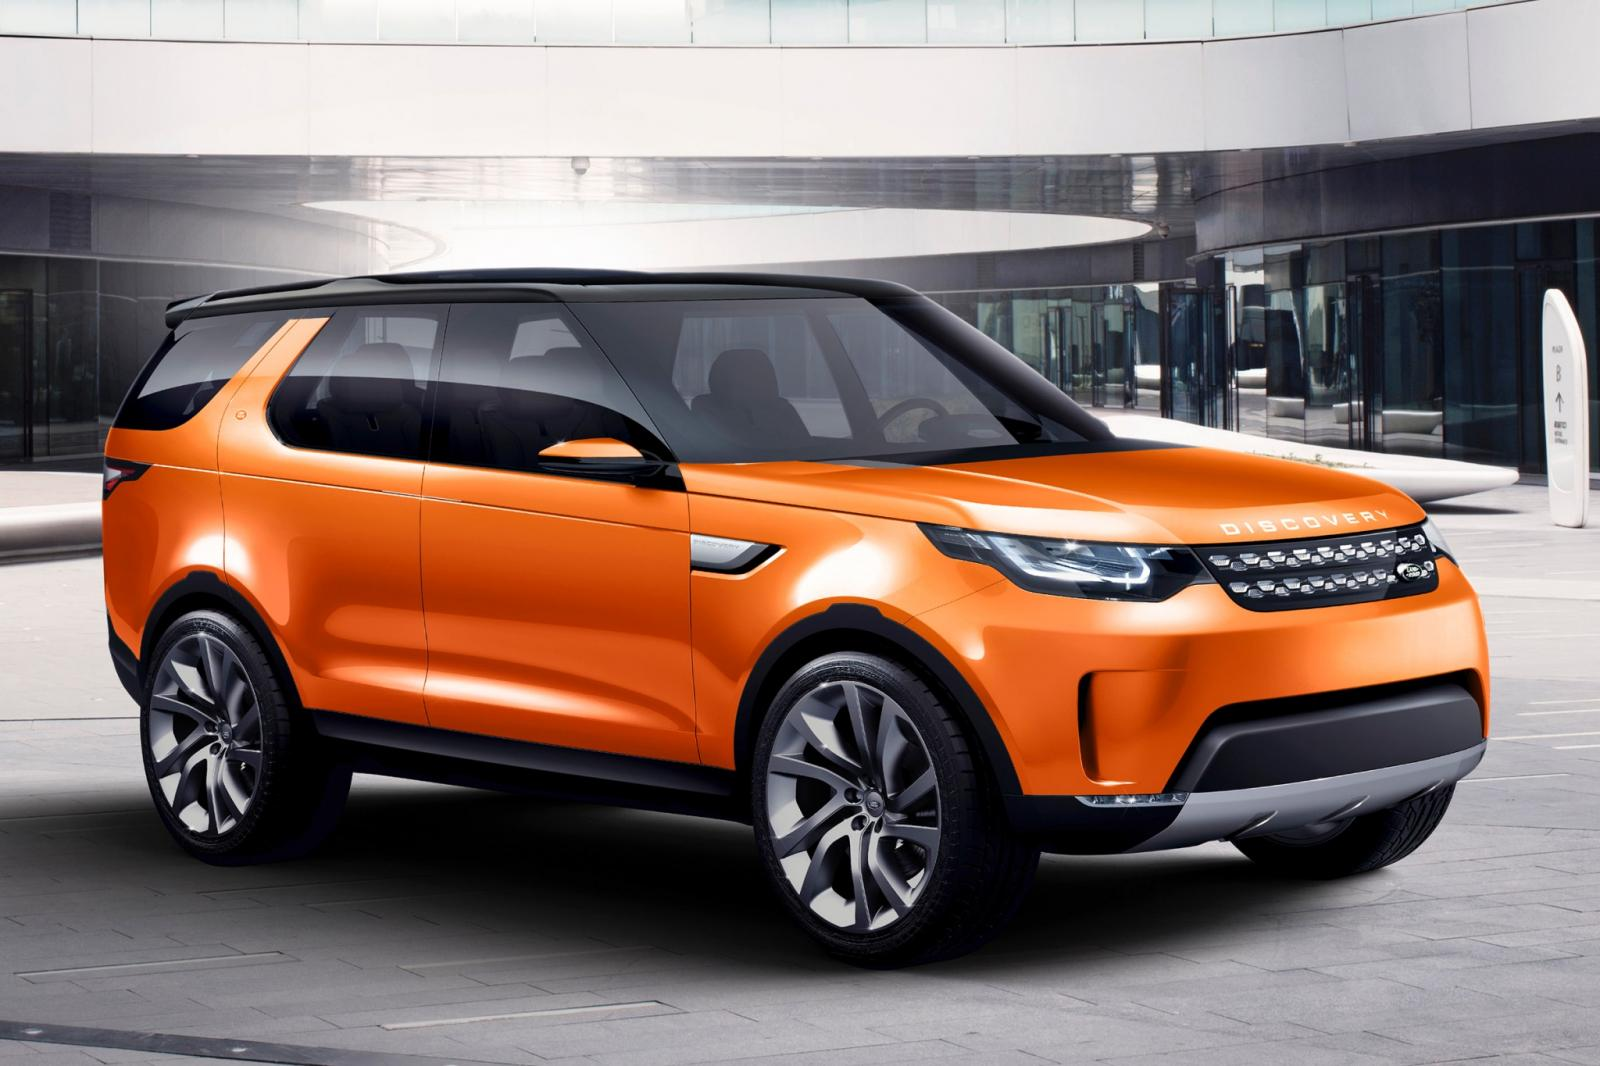 2016 land rover discovery sport information and photos zombiedrive. Black Bedroom Furniture Sets. Home Design Ideas